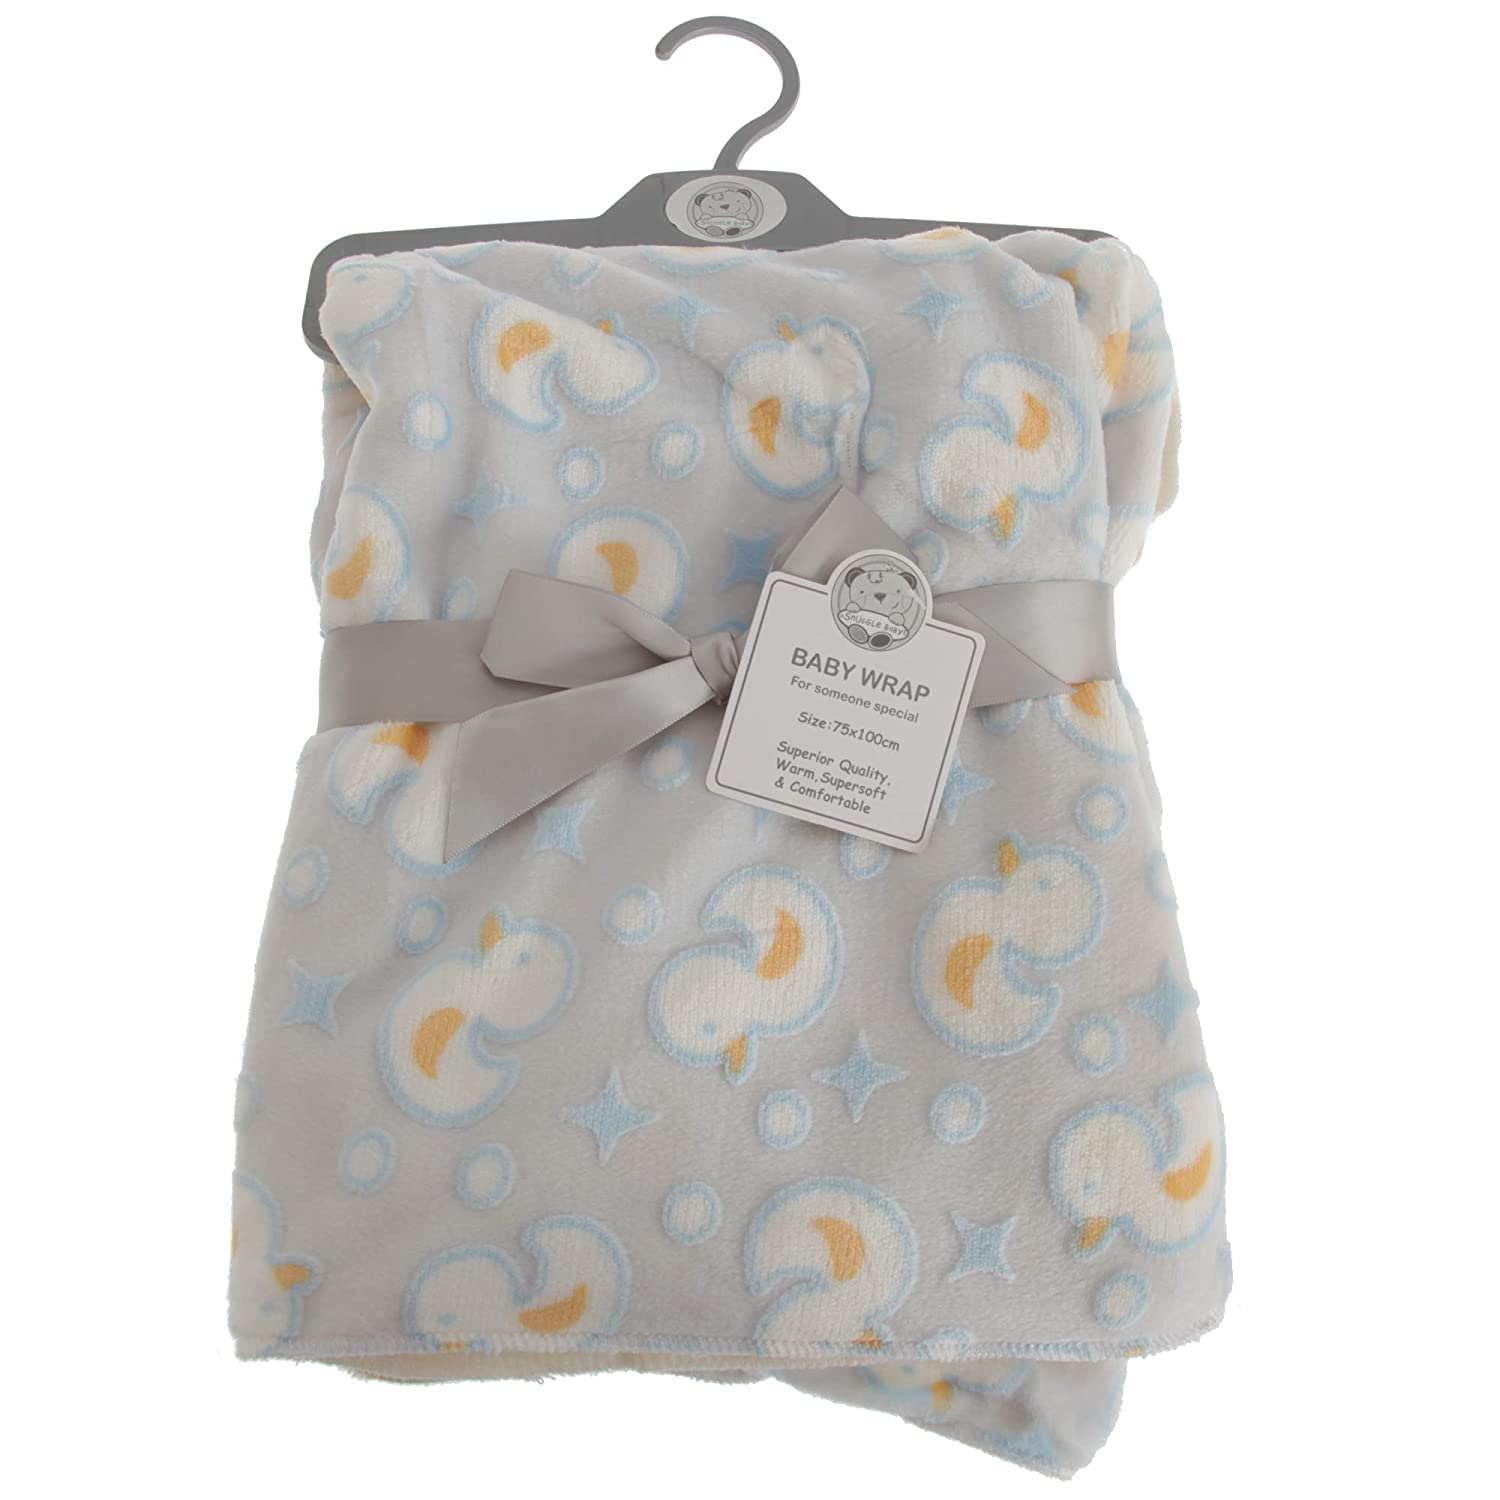 Snuggle Baby Baby Boys//Girls Duck Design Wrap Gray//Blue//Yellow 29.5in x 39in